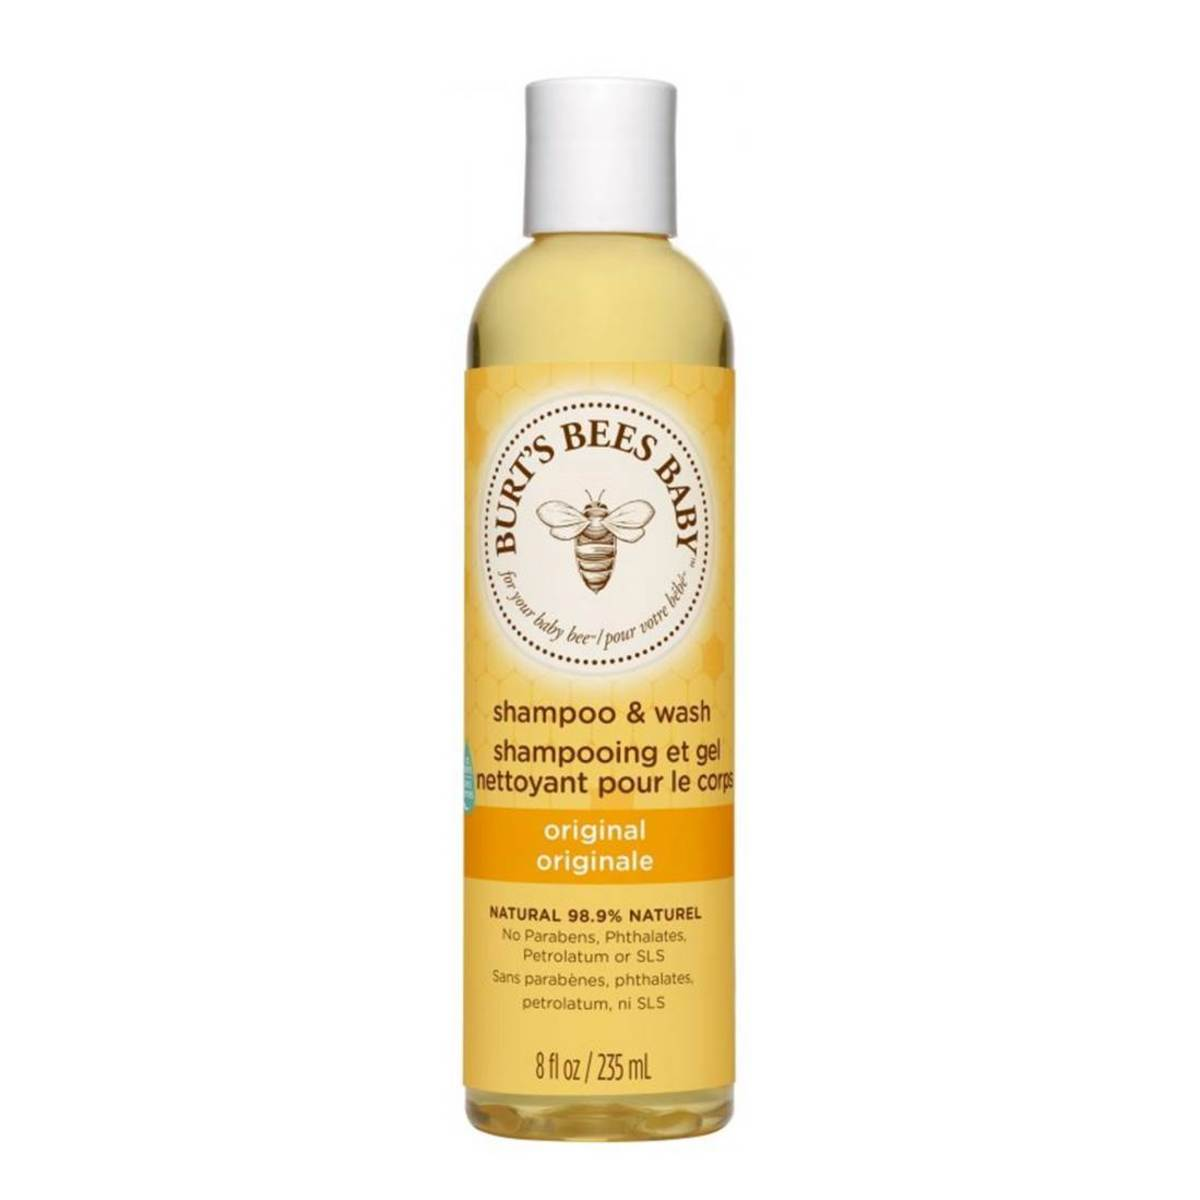 Baby Bee Shampoo & Wash - Original